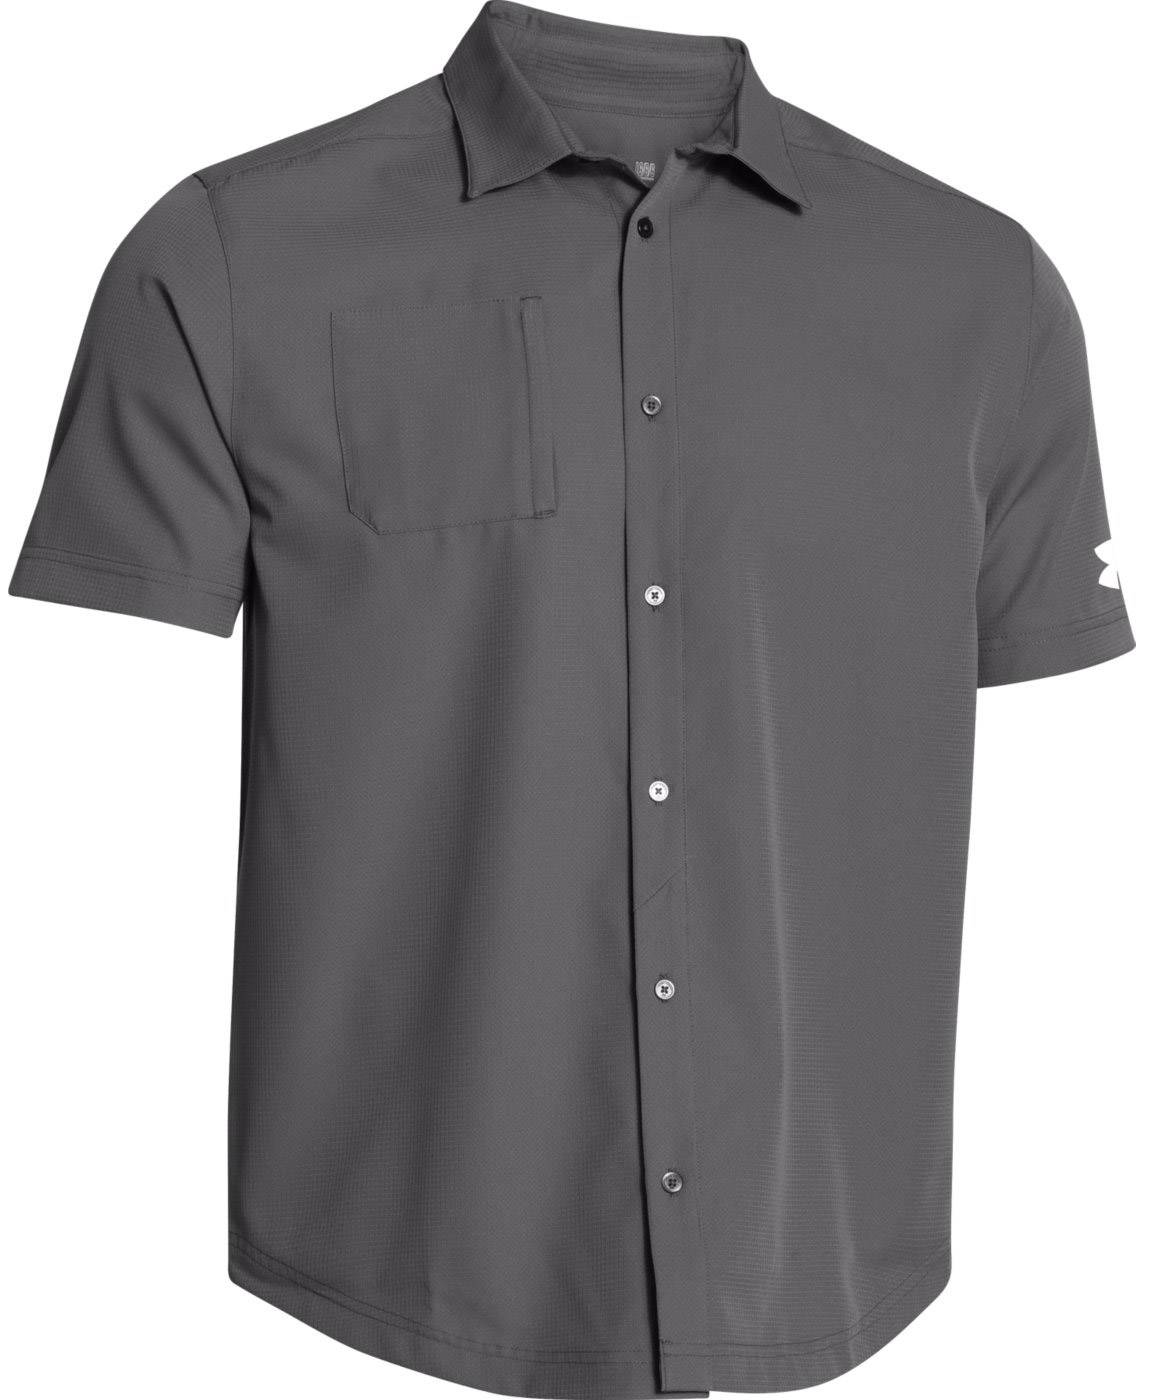 Black t shirt under button down - Black Graphite Midnight Navy White